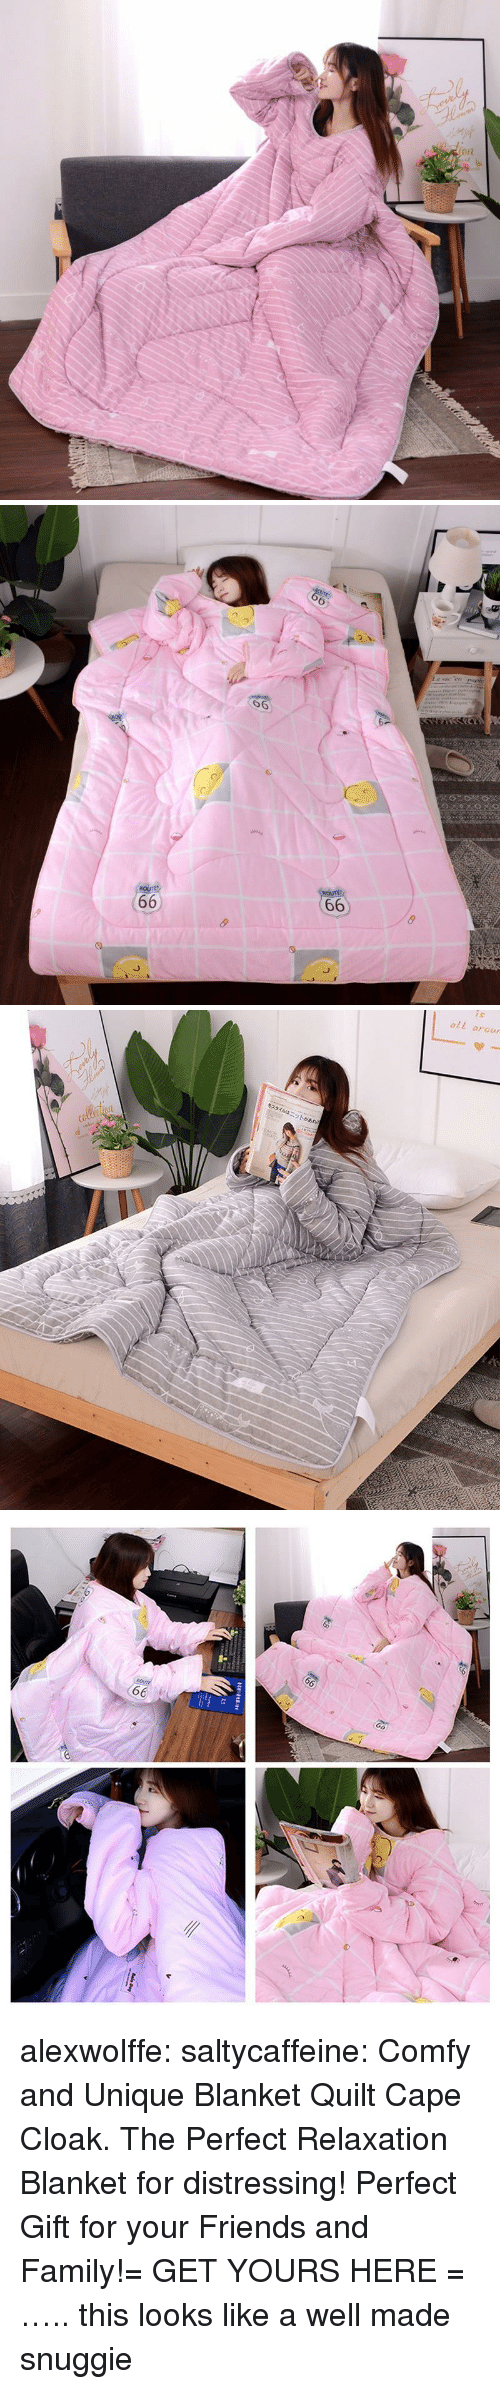 oll: 6  6   oll arour alexwolffe:  saltycaffeine:  Comfy and Unique Blanket Quilt Cape Cloak. The Perfect Relaxation Blanket for distressing! Perfect Gift for your Friends and Family!= GET YOURS HERE =  ….. this looks like a well made snuggie